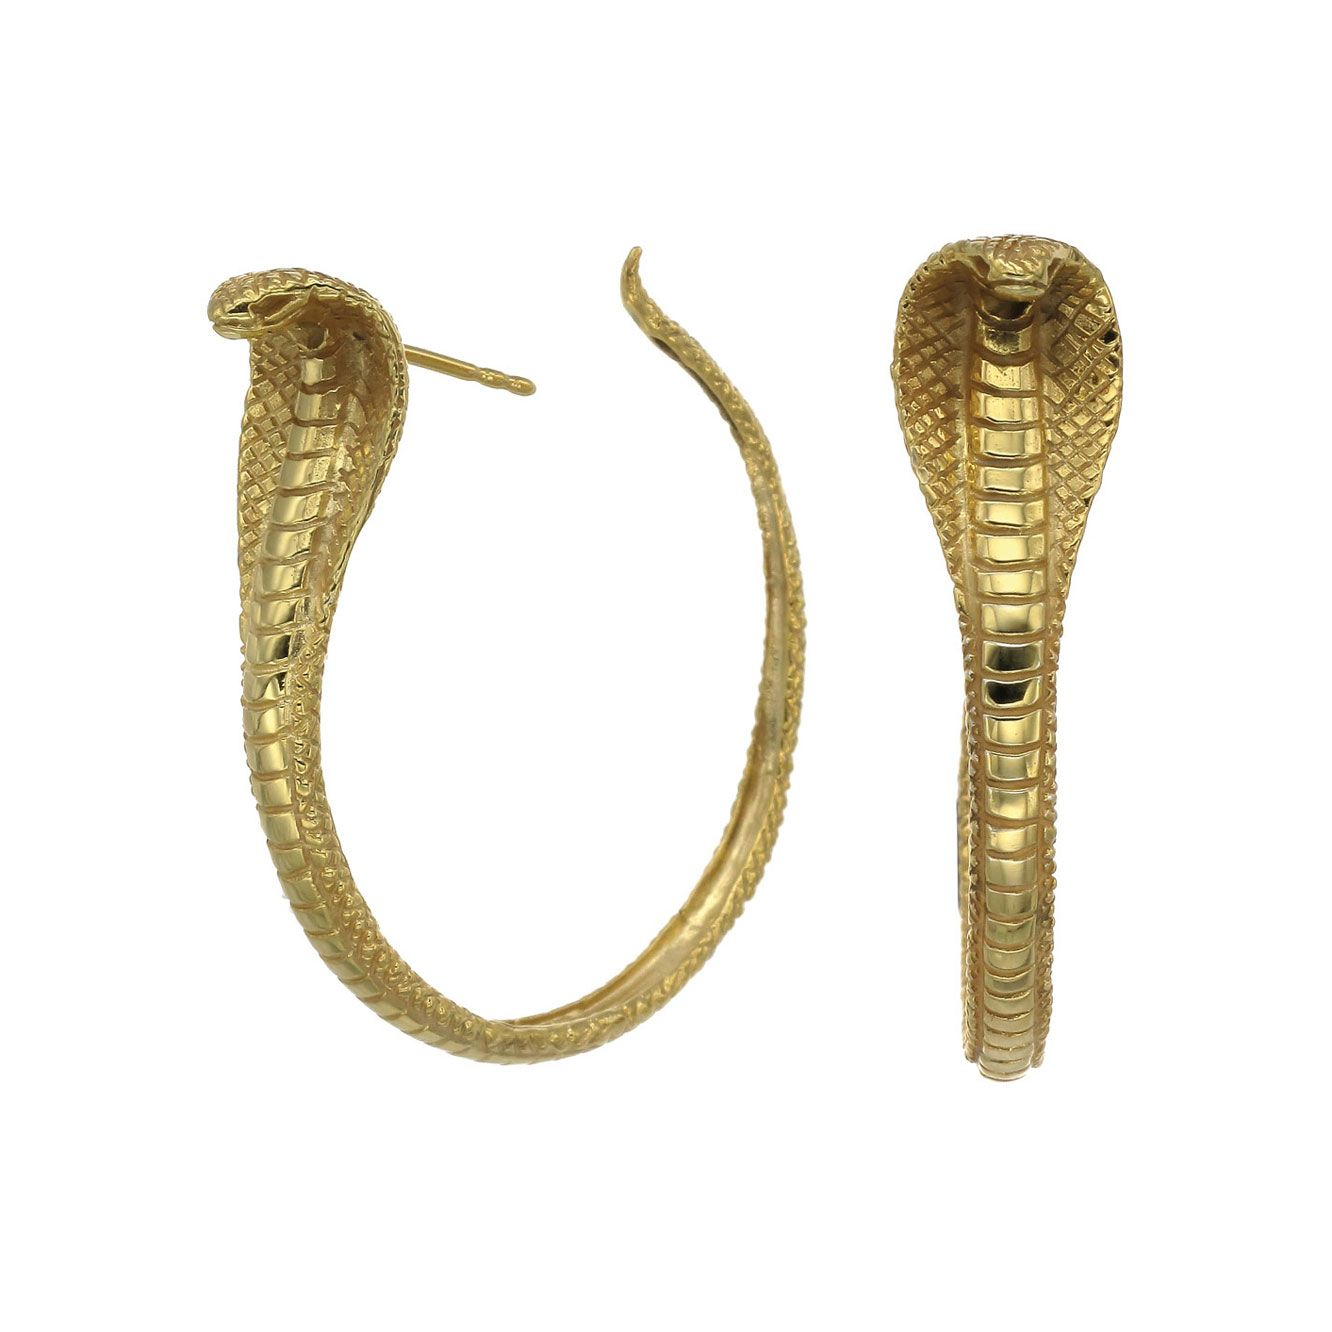 Silver protect me hoop earrings by zoe morgan the cobra is an zoe and morgan gold cobra hoop earrings buycottarizona Image collections